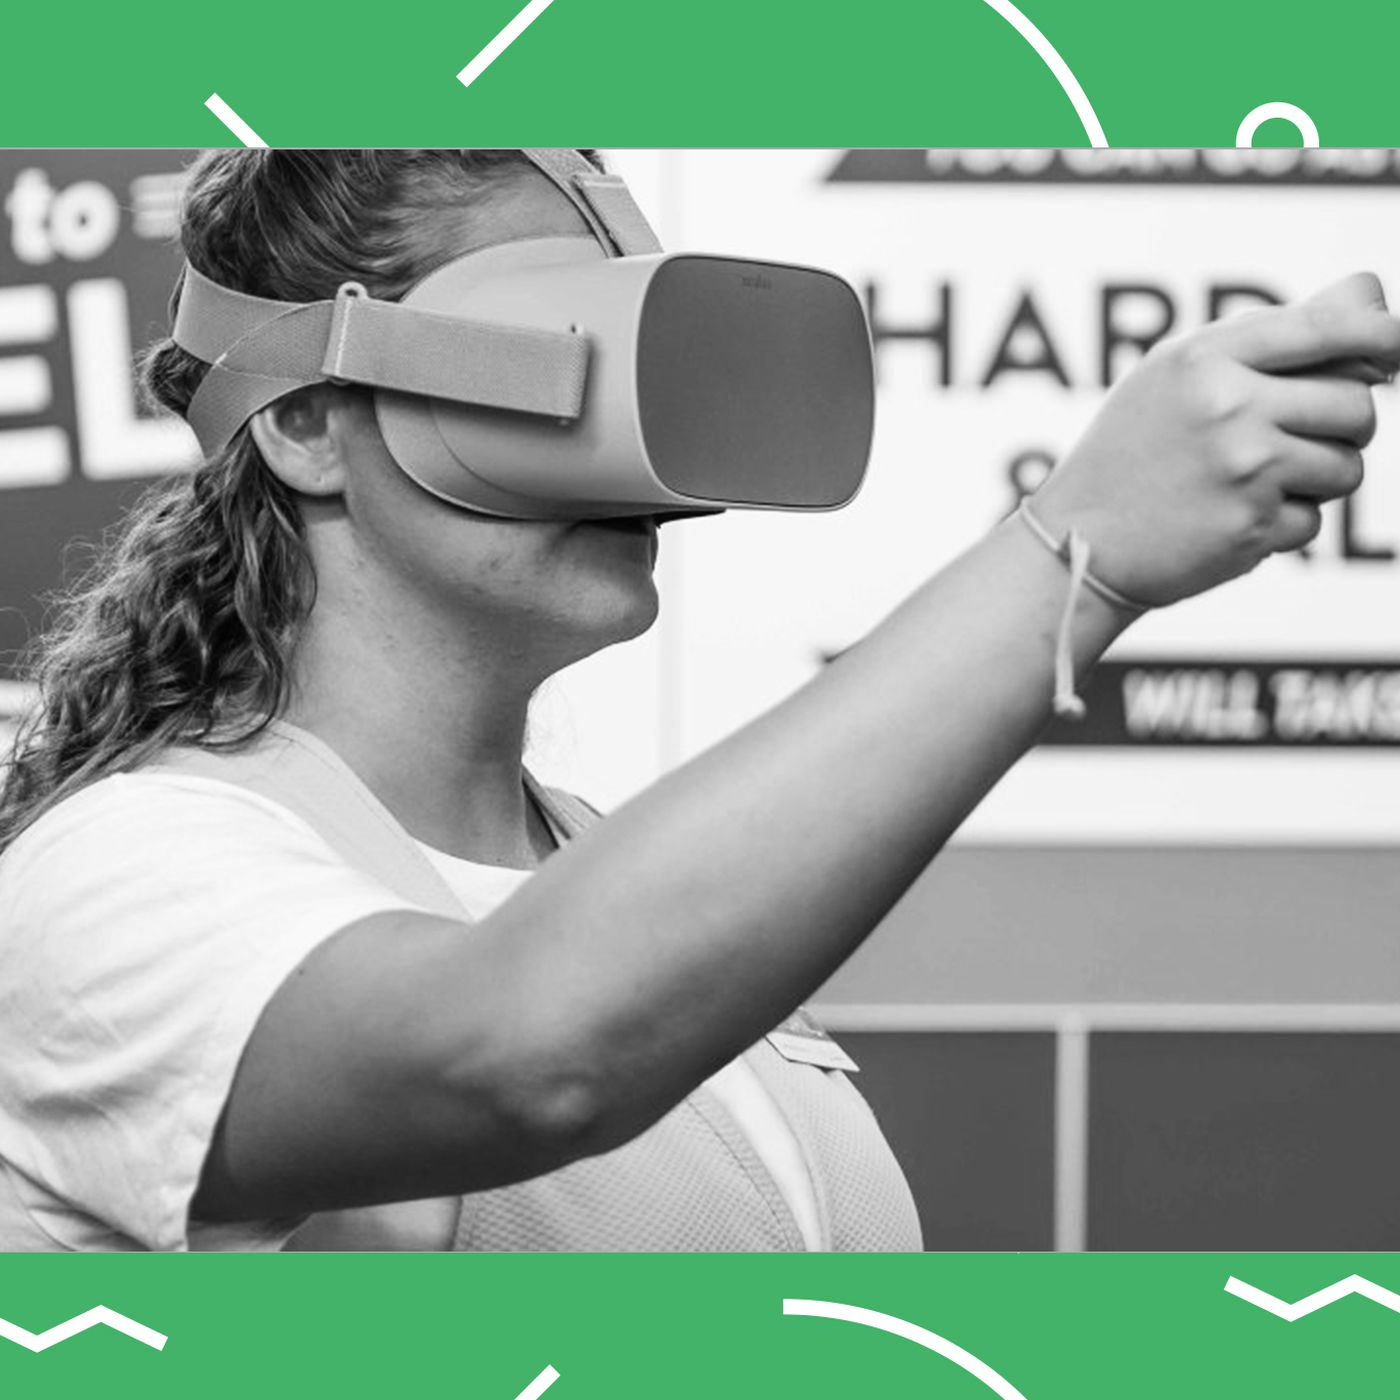 vox.com - Patrick Sisson - Walmart is using virtual reality to train its workforce for Black Friday